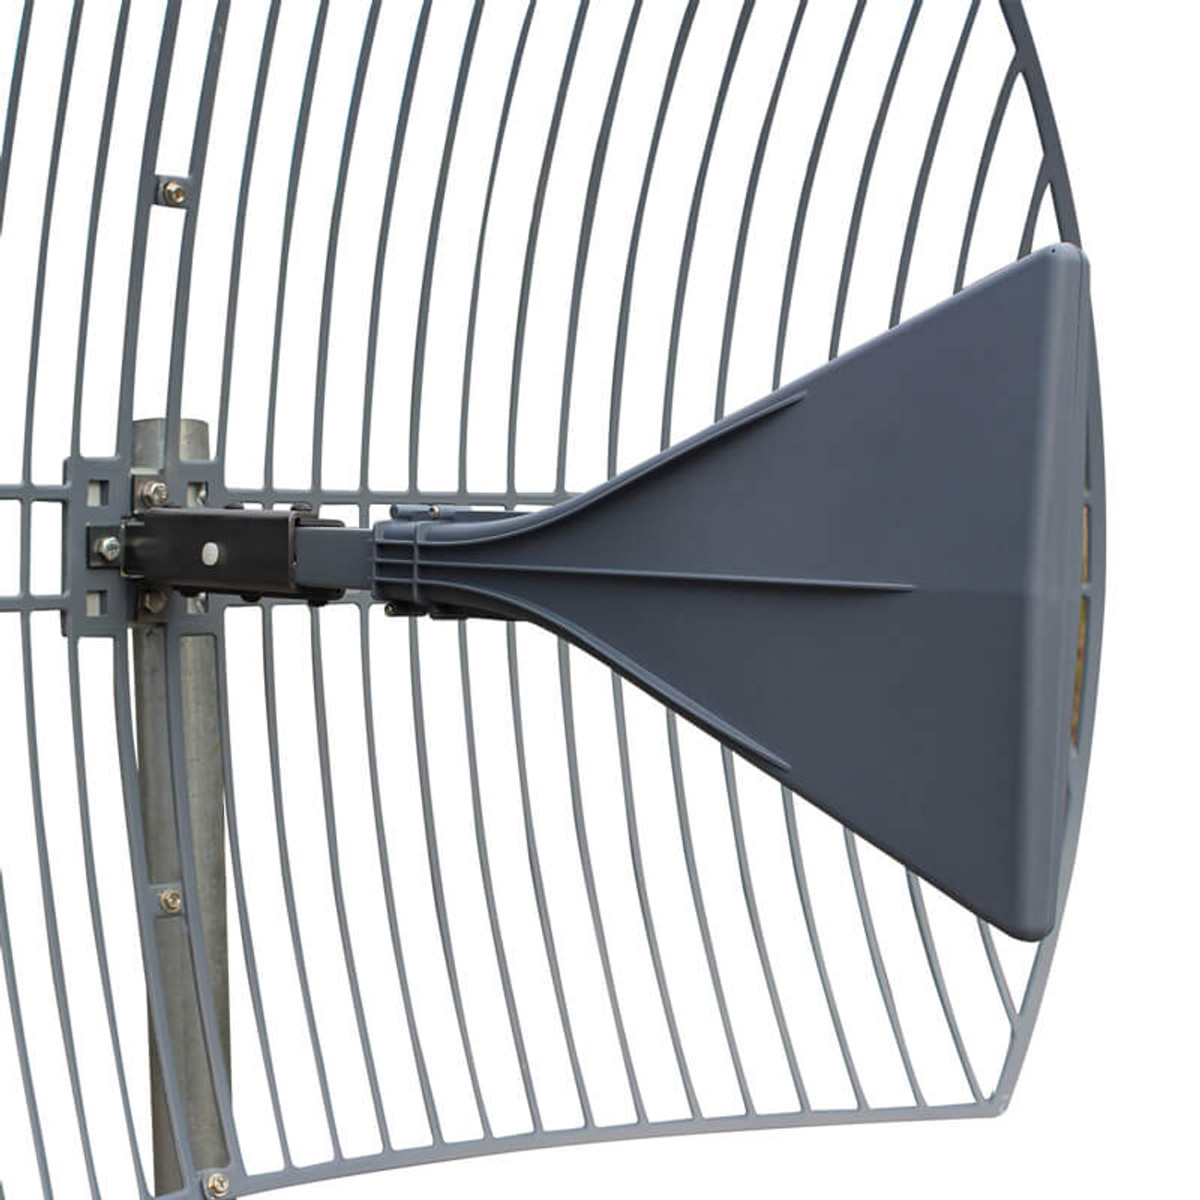 Bolton Technical UltraGain 26 Directional High Gain Cellular Antenna - Close Up